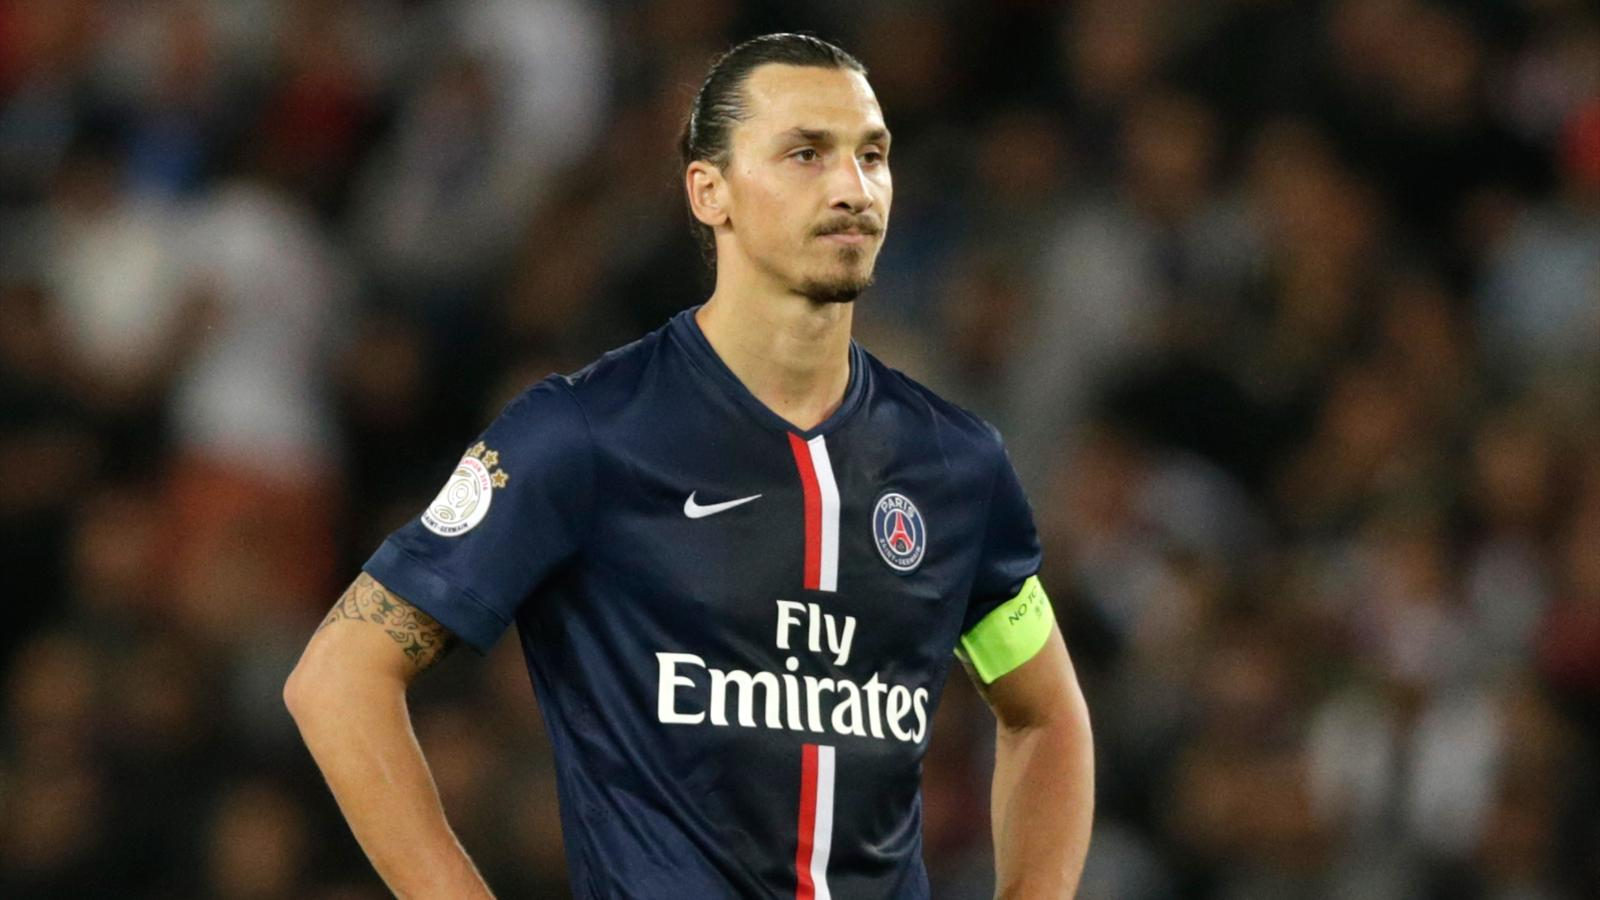 Zlatan Ibrahimovic with a bid in theregion of £11m this summer